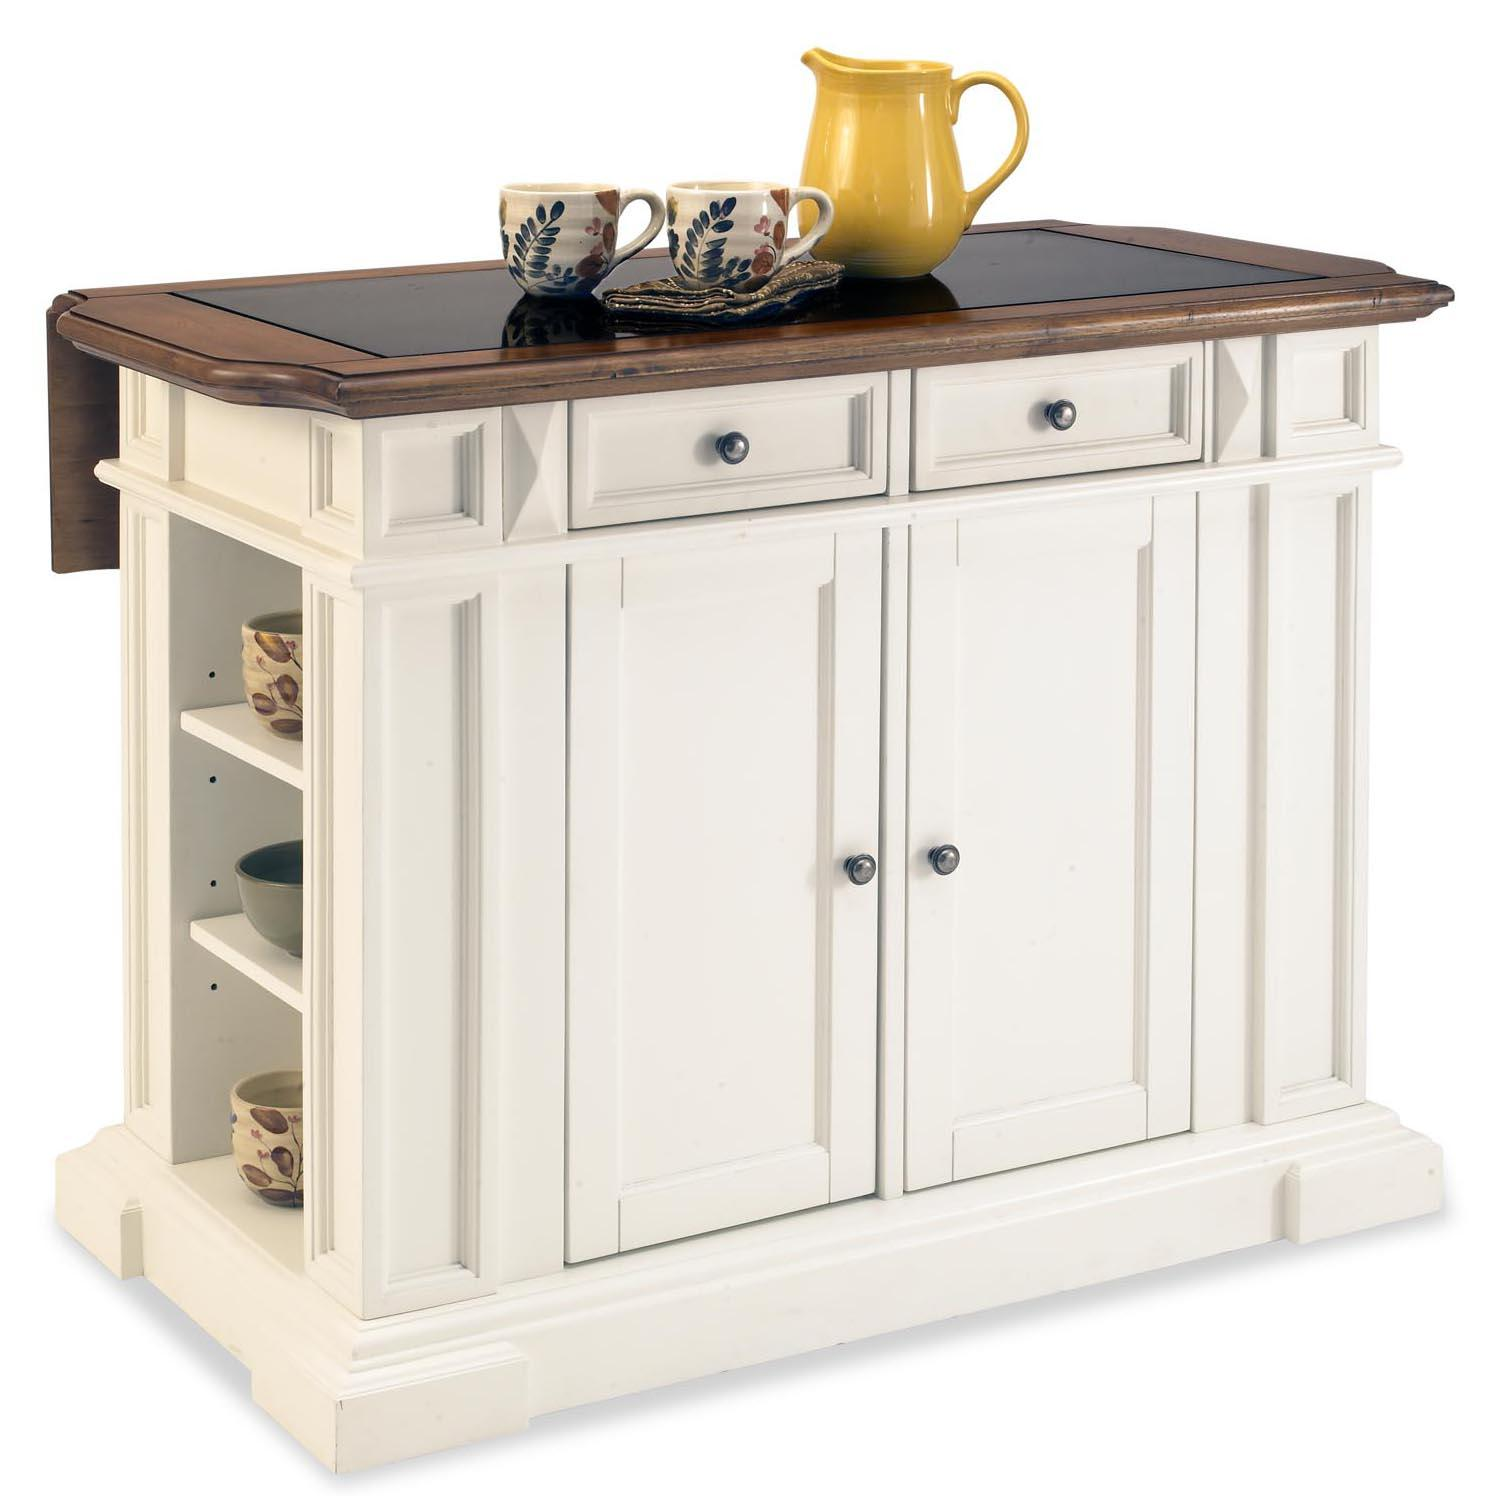 Sonja used the reclaim paint color pebble by caromal colours a - Cool Home Styles Kitchen Island White And Distressed Oak Finish With